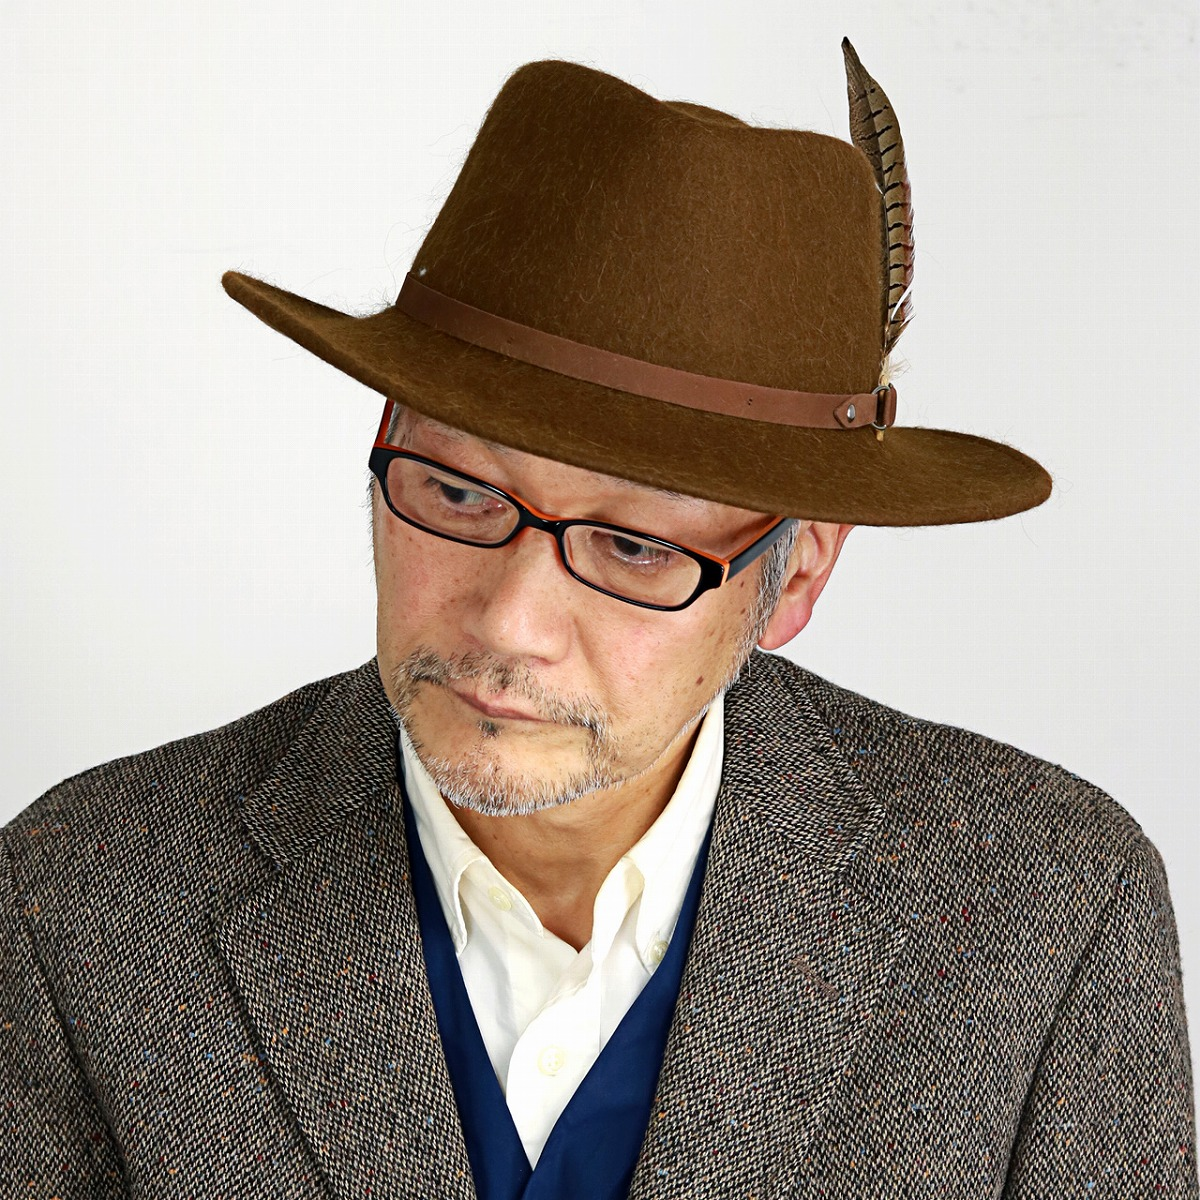 077b4d92740 Suede belt camel  fedora  stetson hat mail order man hat Christmas gift  present with ...